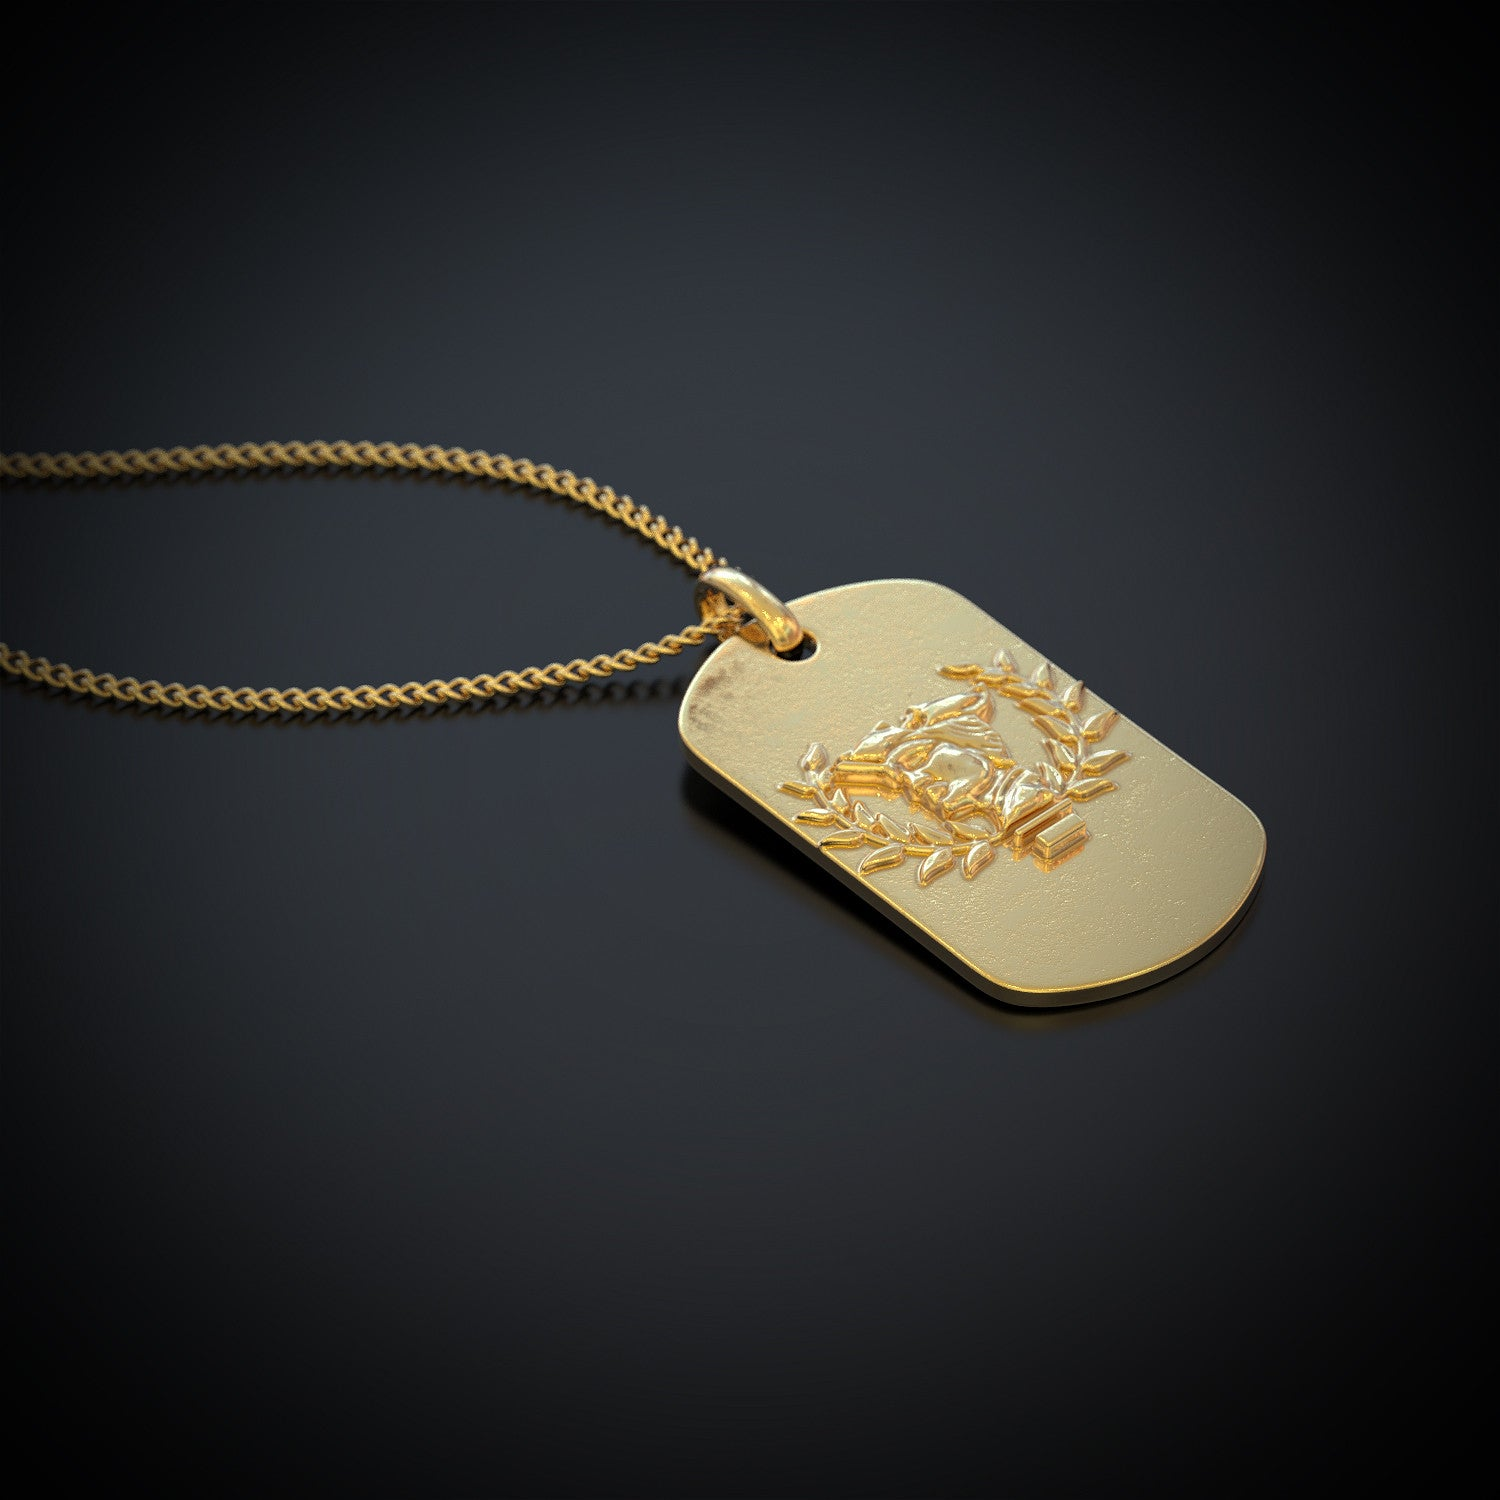 United States Army Reserve Dog Tag